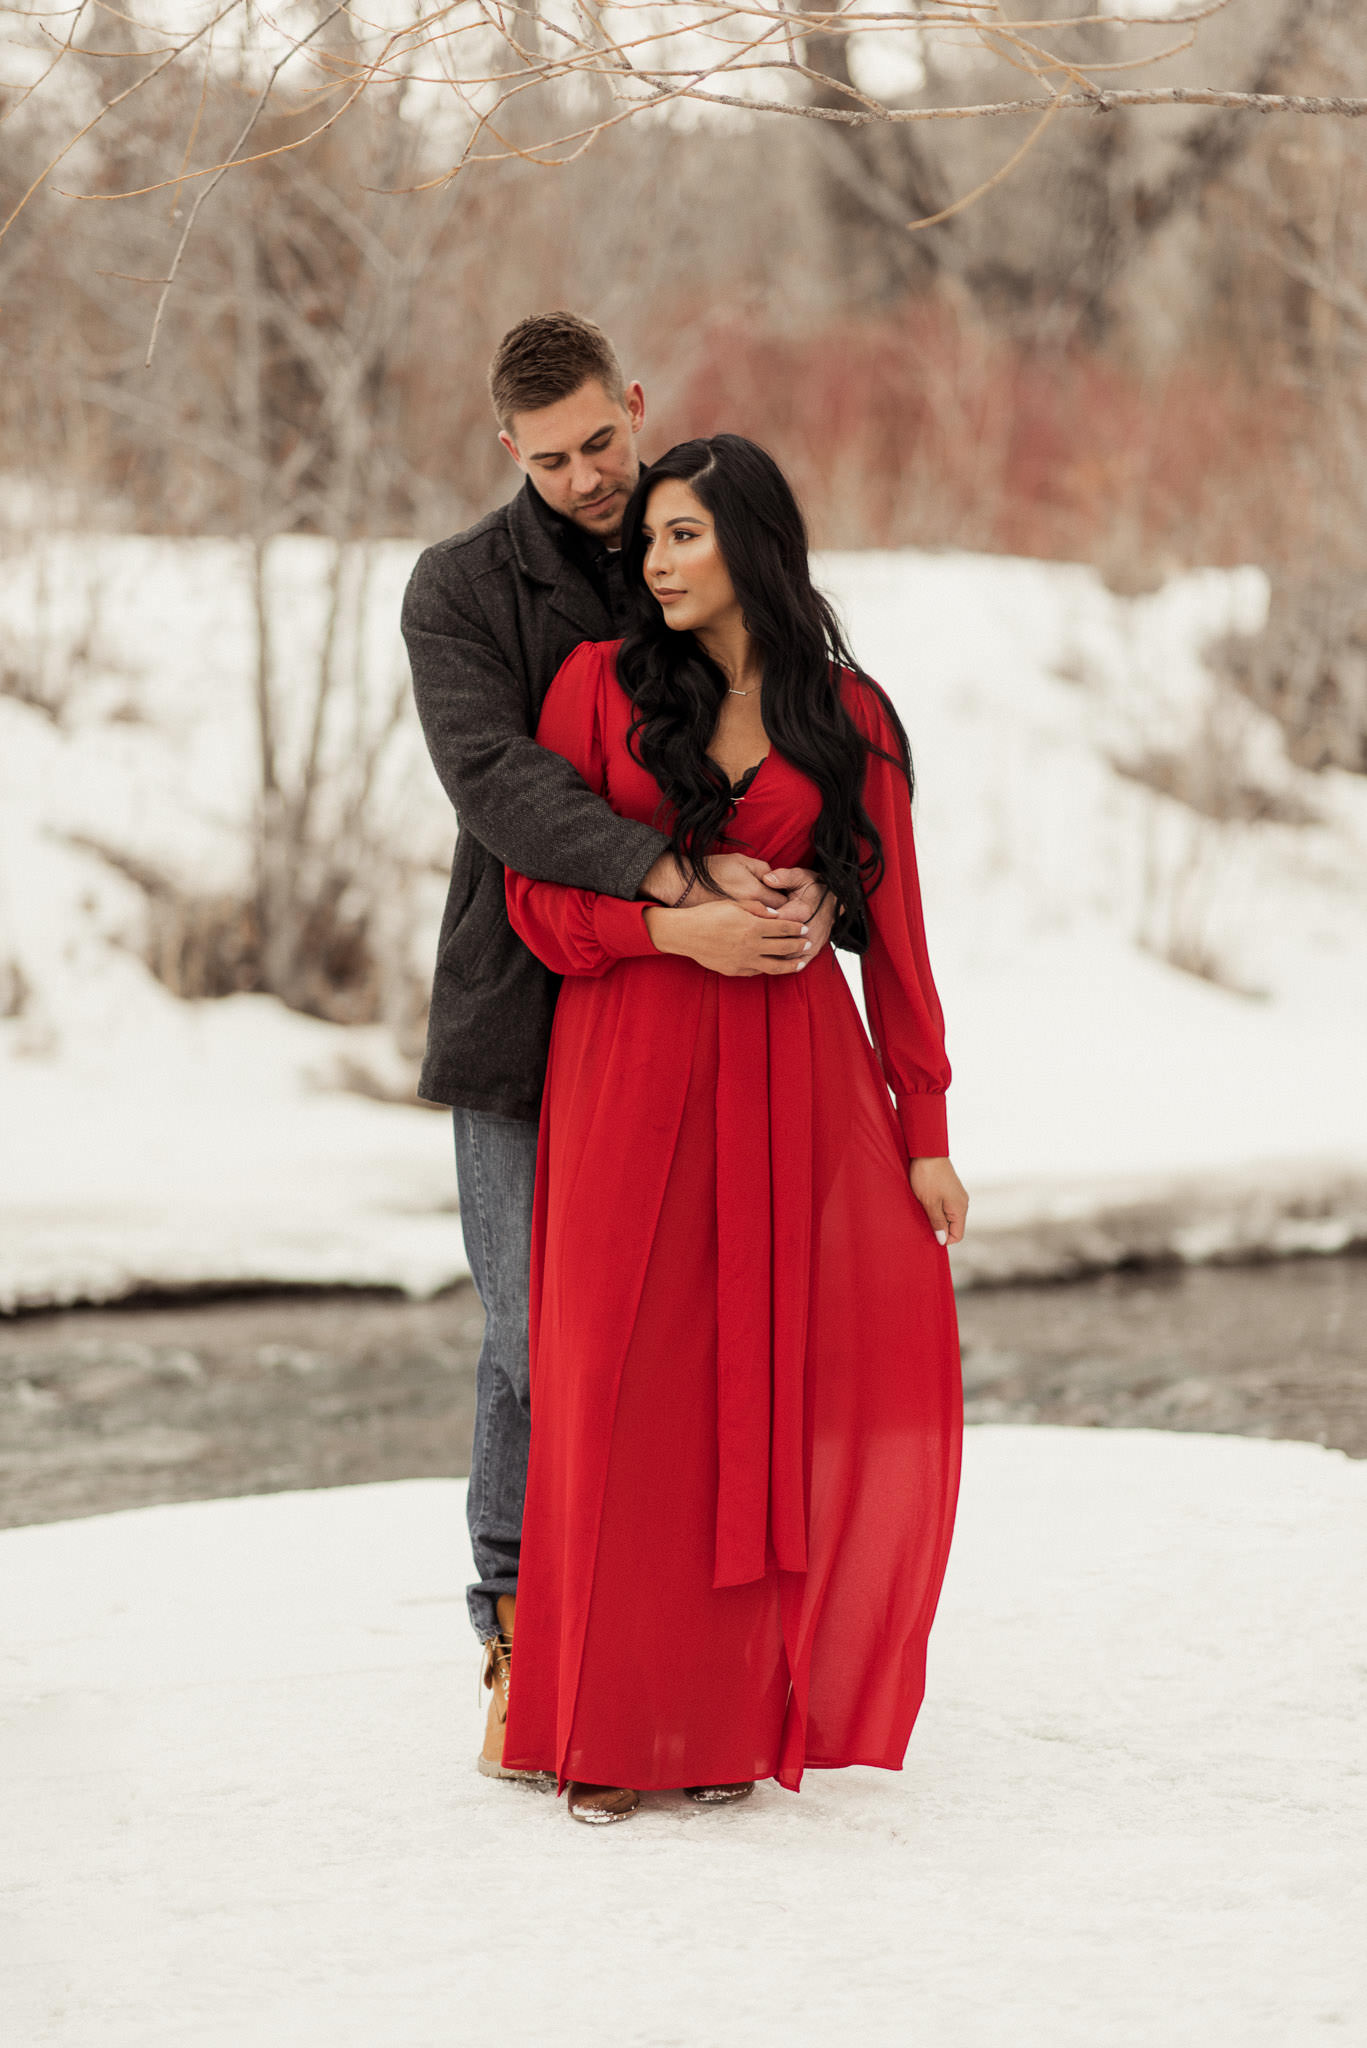 sandra-ryan-colorado-winter-snow-engagement-couples-valentines-red-houston-photographer-sm-19.jpg